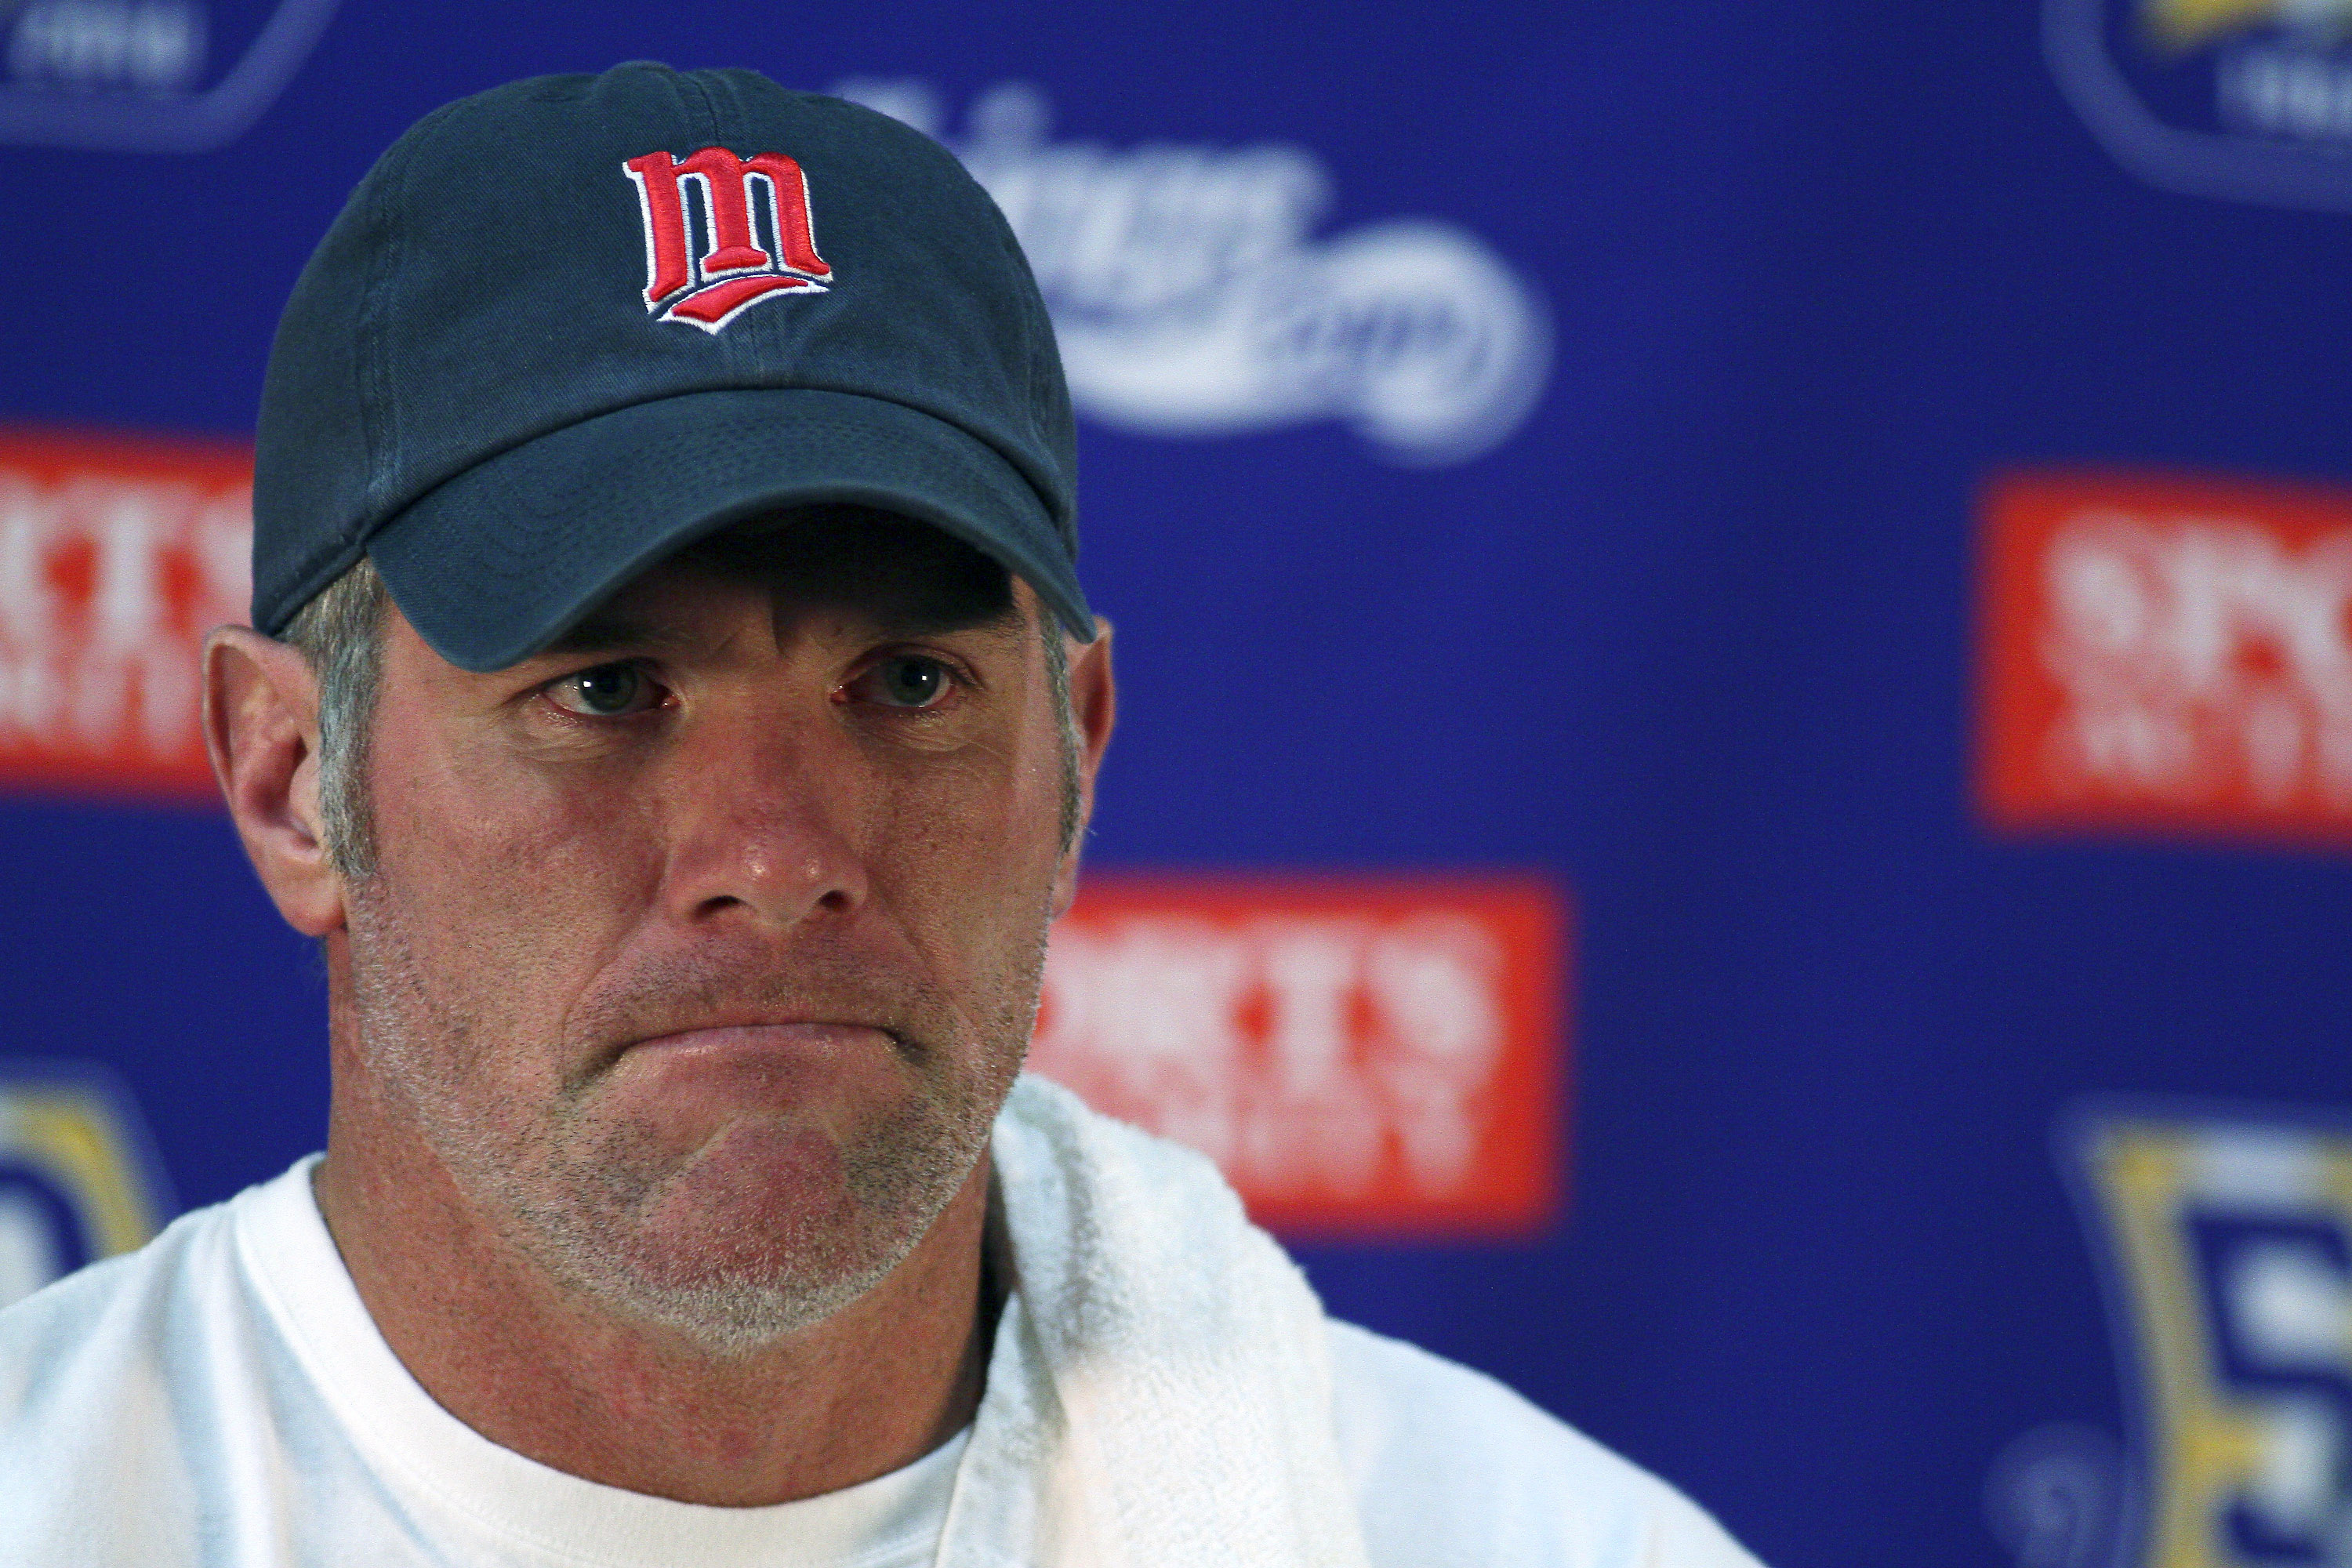 EDEN PRAIRIE, MN - OCTOBER 7:  Minnesota Vikings quarterback Brett Favre answers questions from the media during a press conference at Winter Park on October 7, 2010 in Eden Prairie, Minnesota.  (Photo by Adam Bettcher/Getty Images)